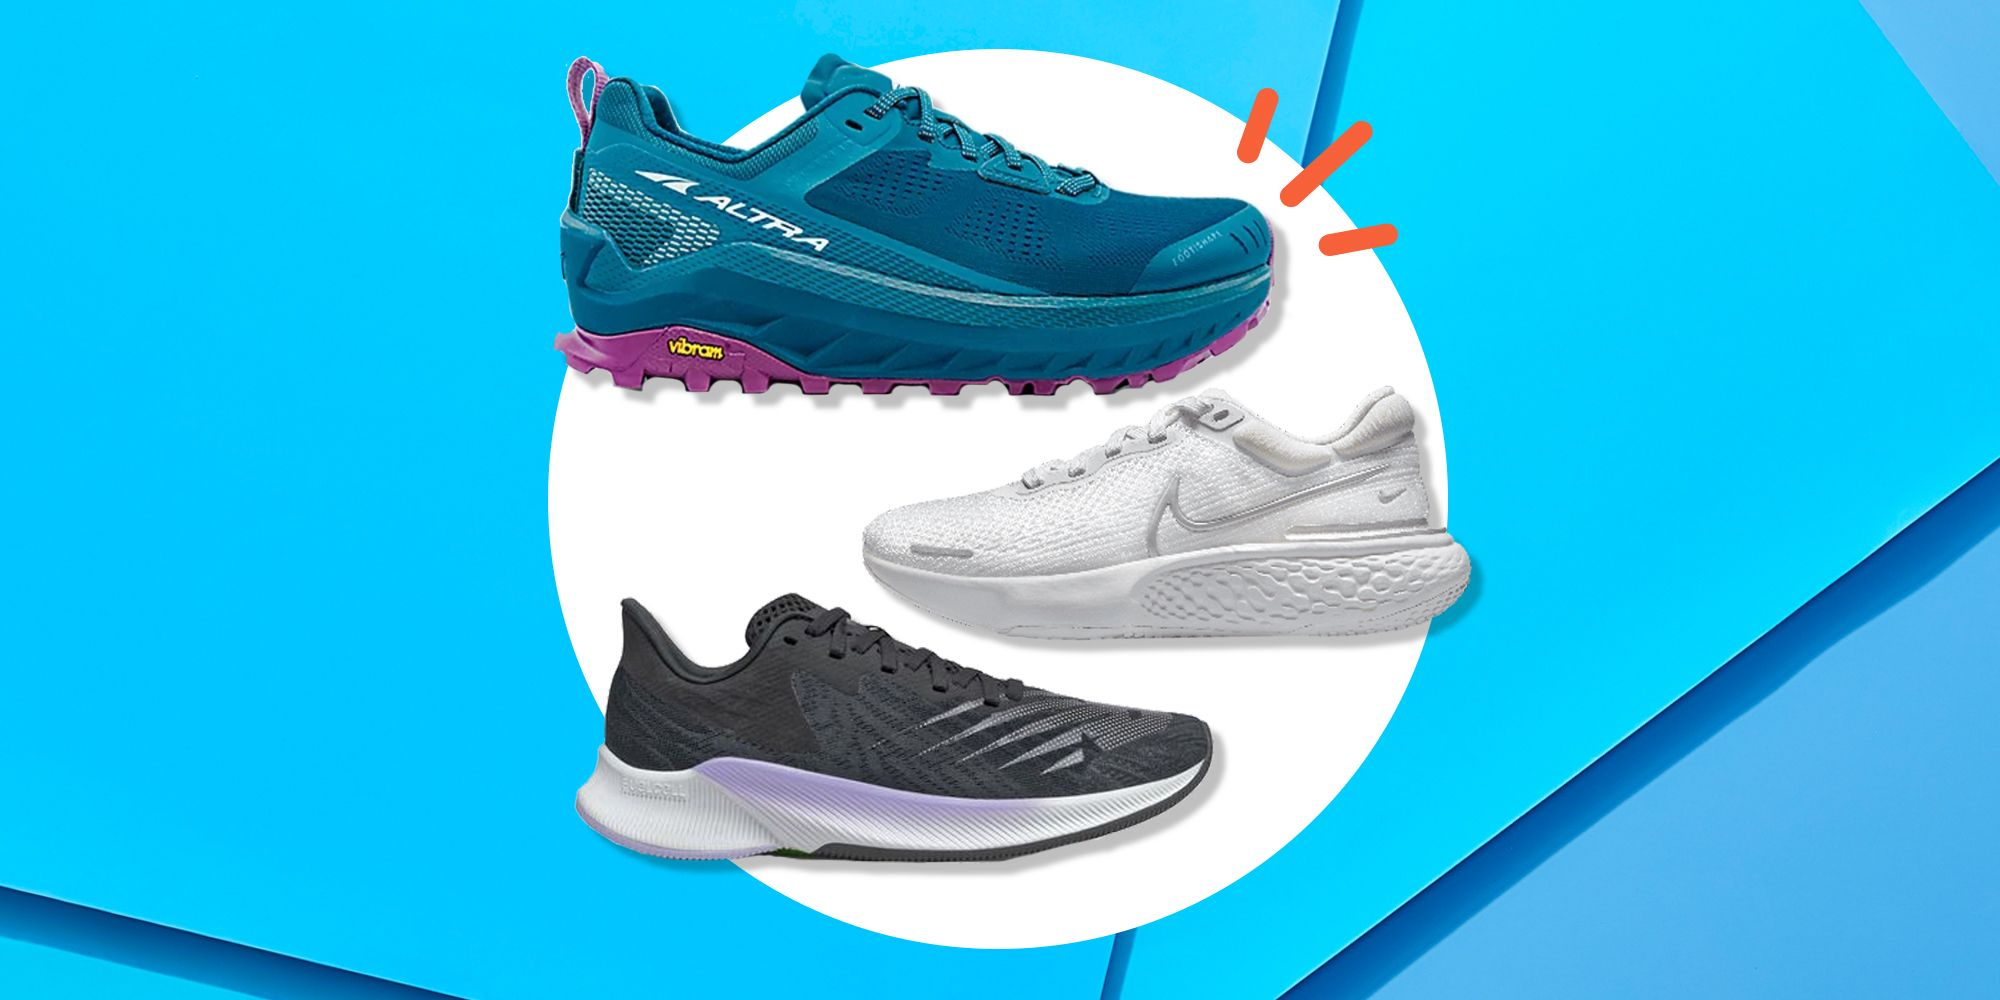 These Running Shoes Are *Just* What Your Aching Arches Need